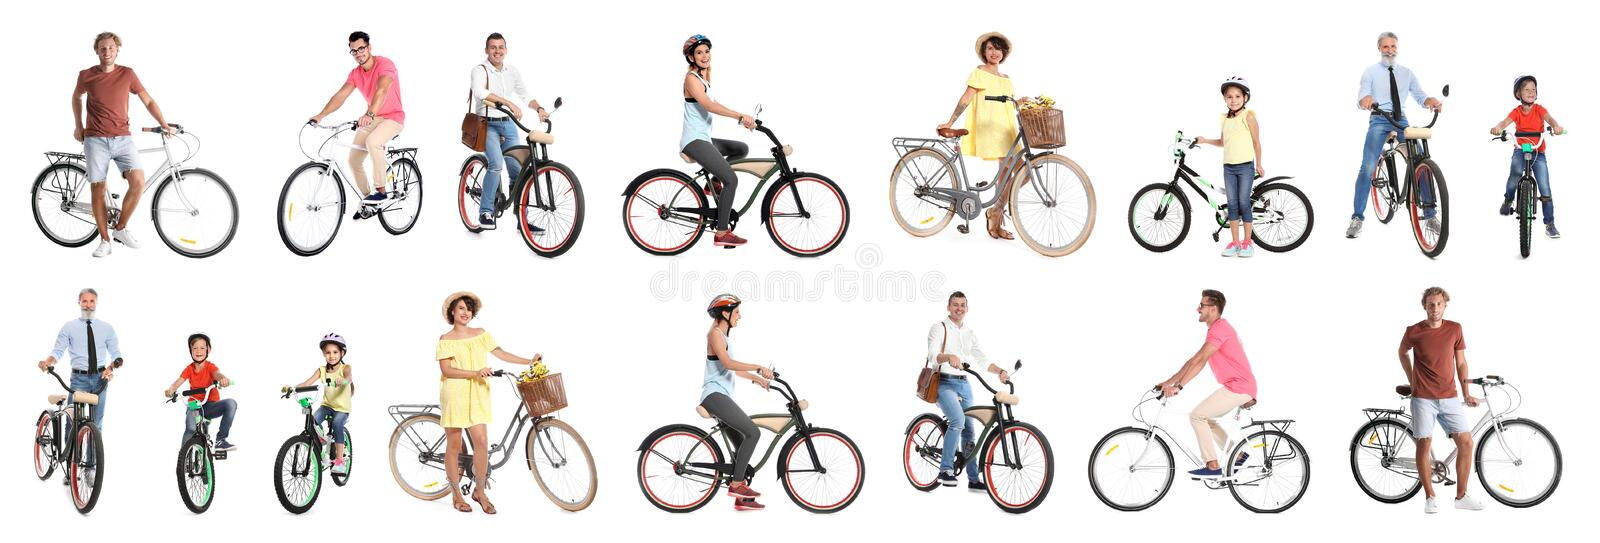 Collage of people with bicycles on background royalty free stock image